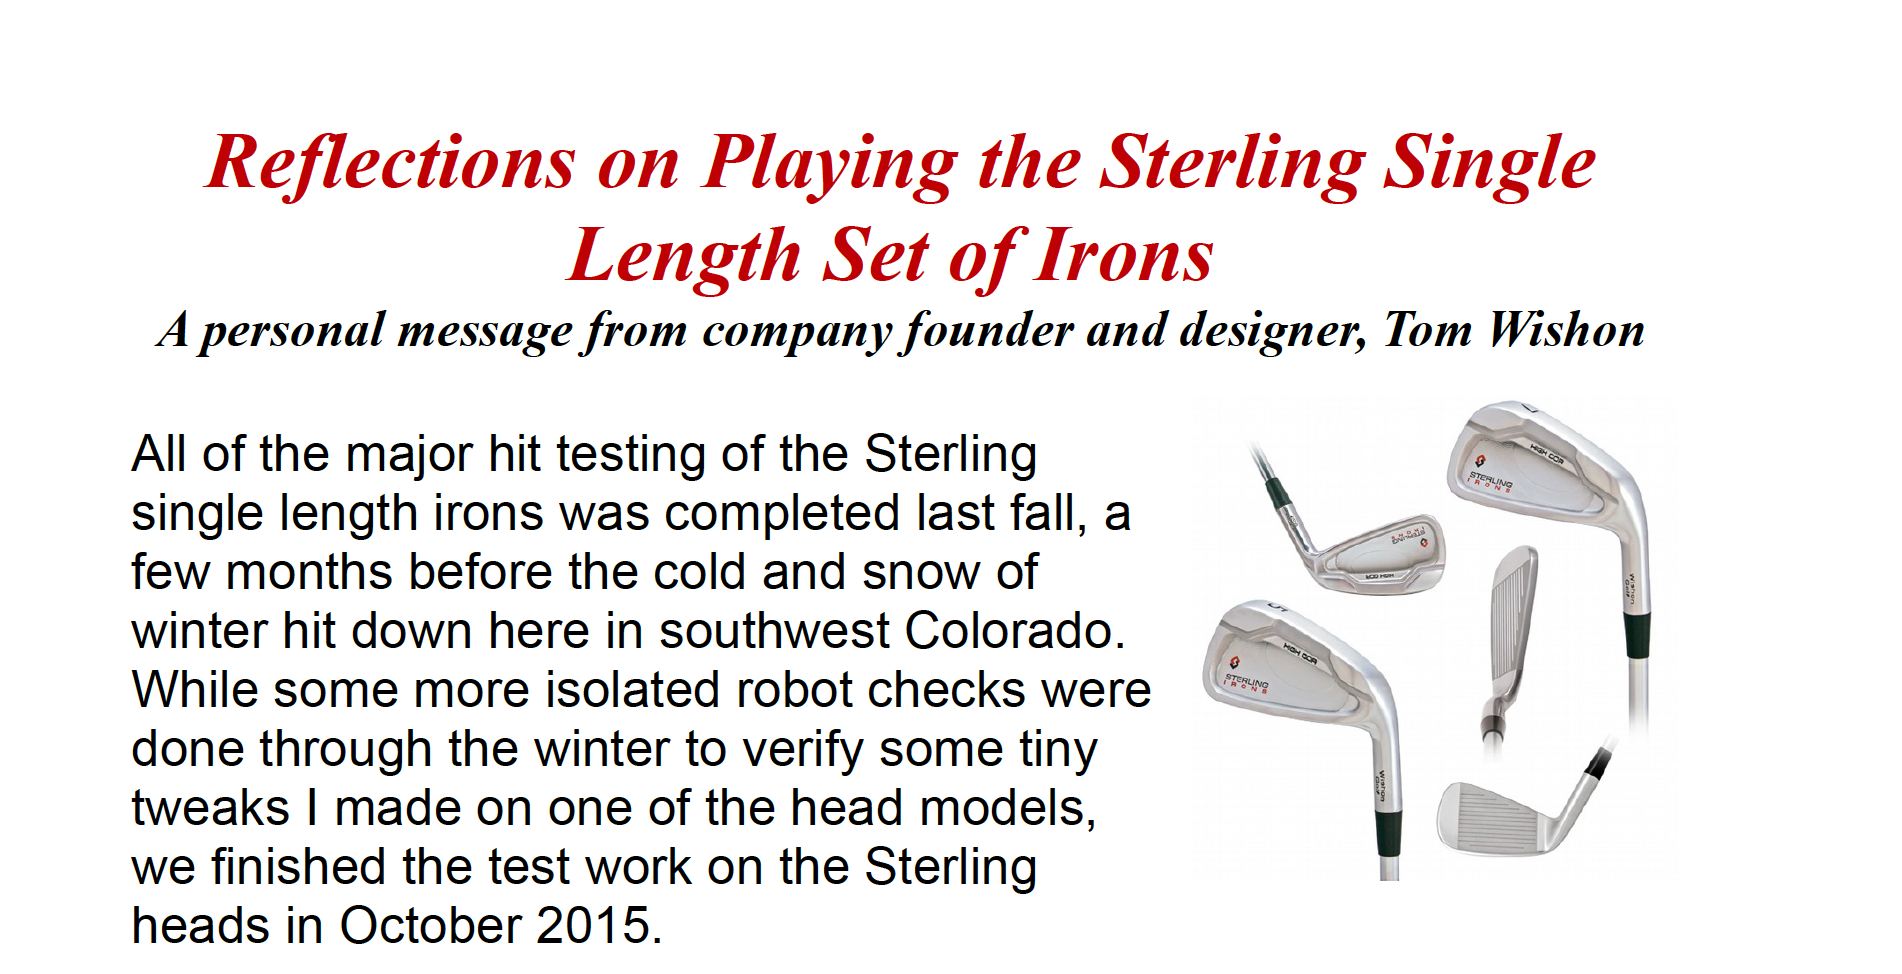 Reflections on Playing the Sterling Single Length Set of Irons